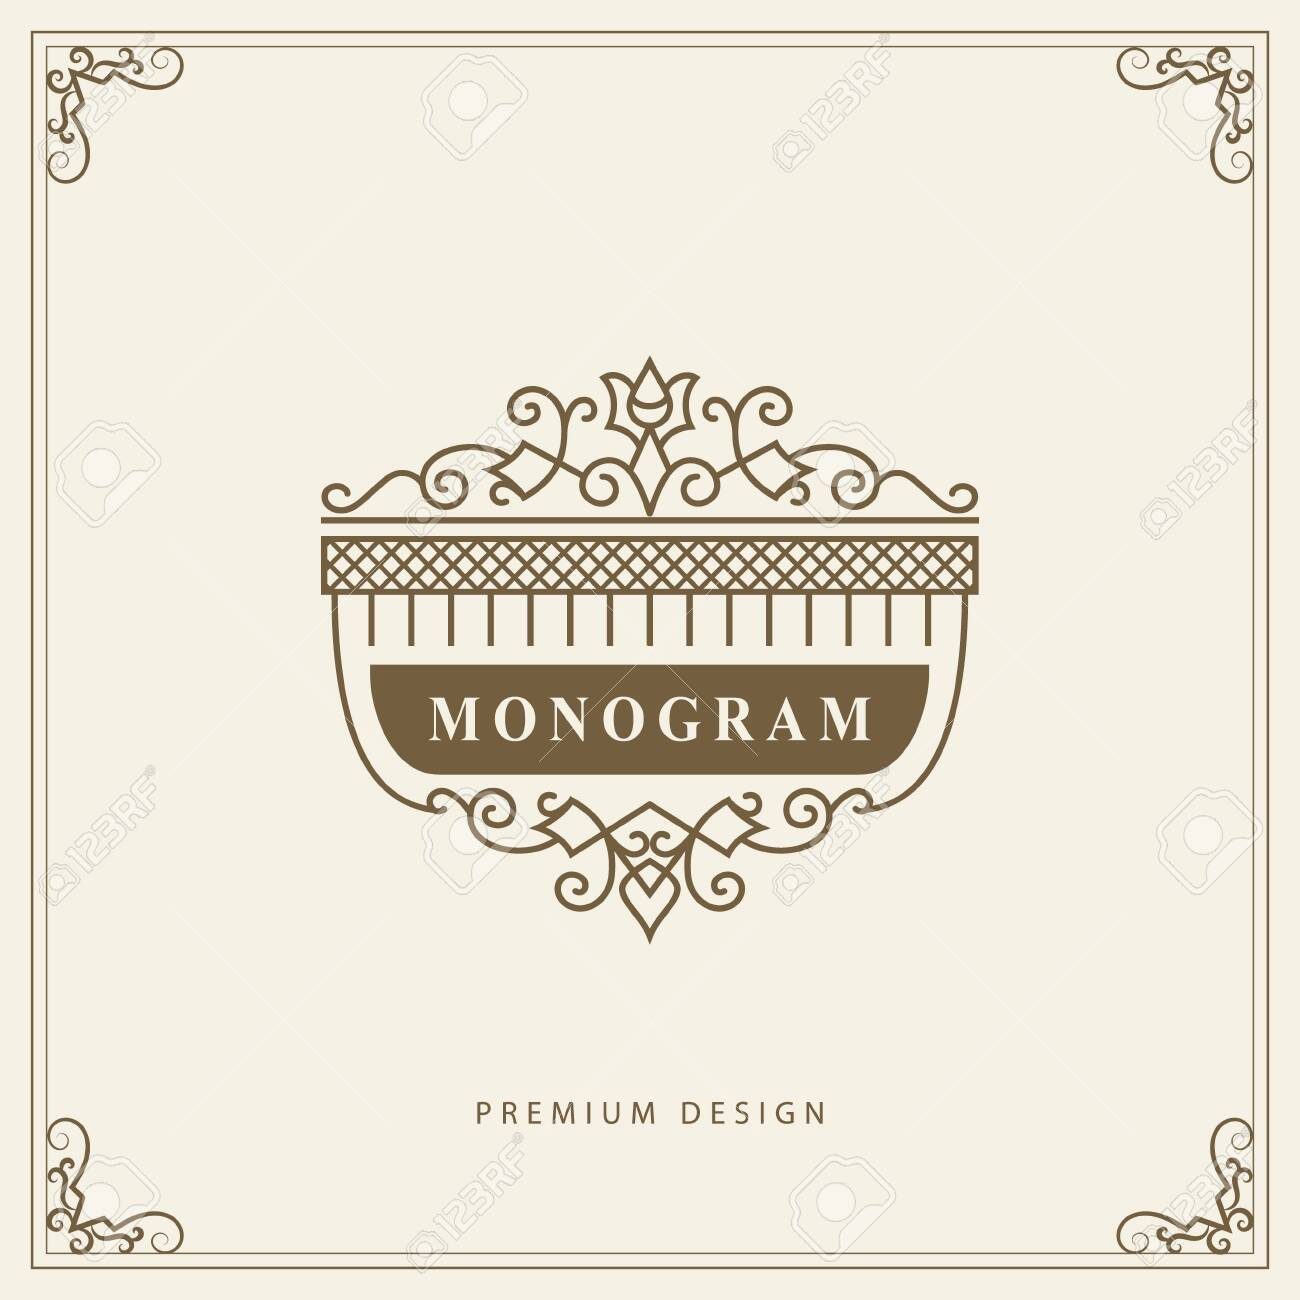 Vintage Ornament Greeting Card Vector Template. Retro Luxury Invitation, Royal Certificate. Flourishes frame. Vector Background - 123958489